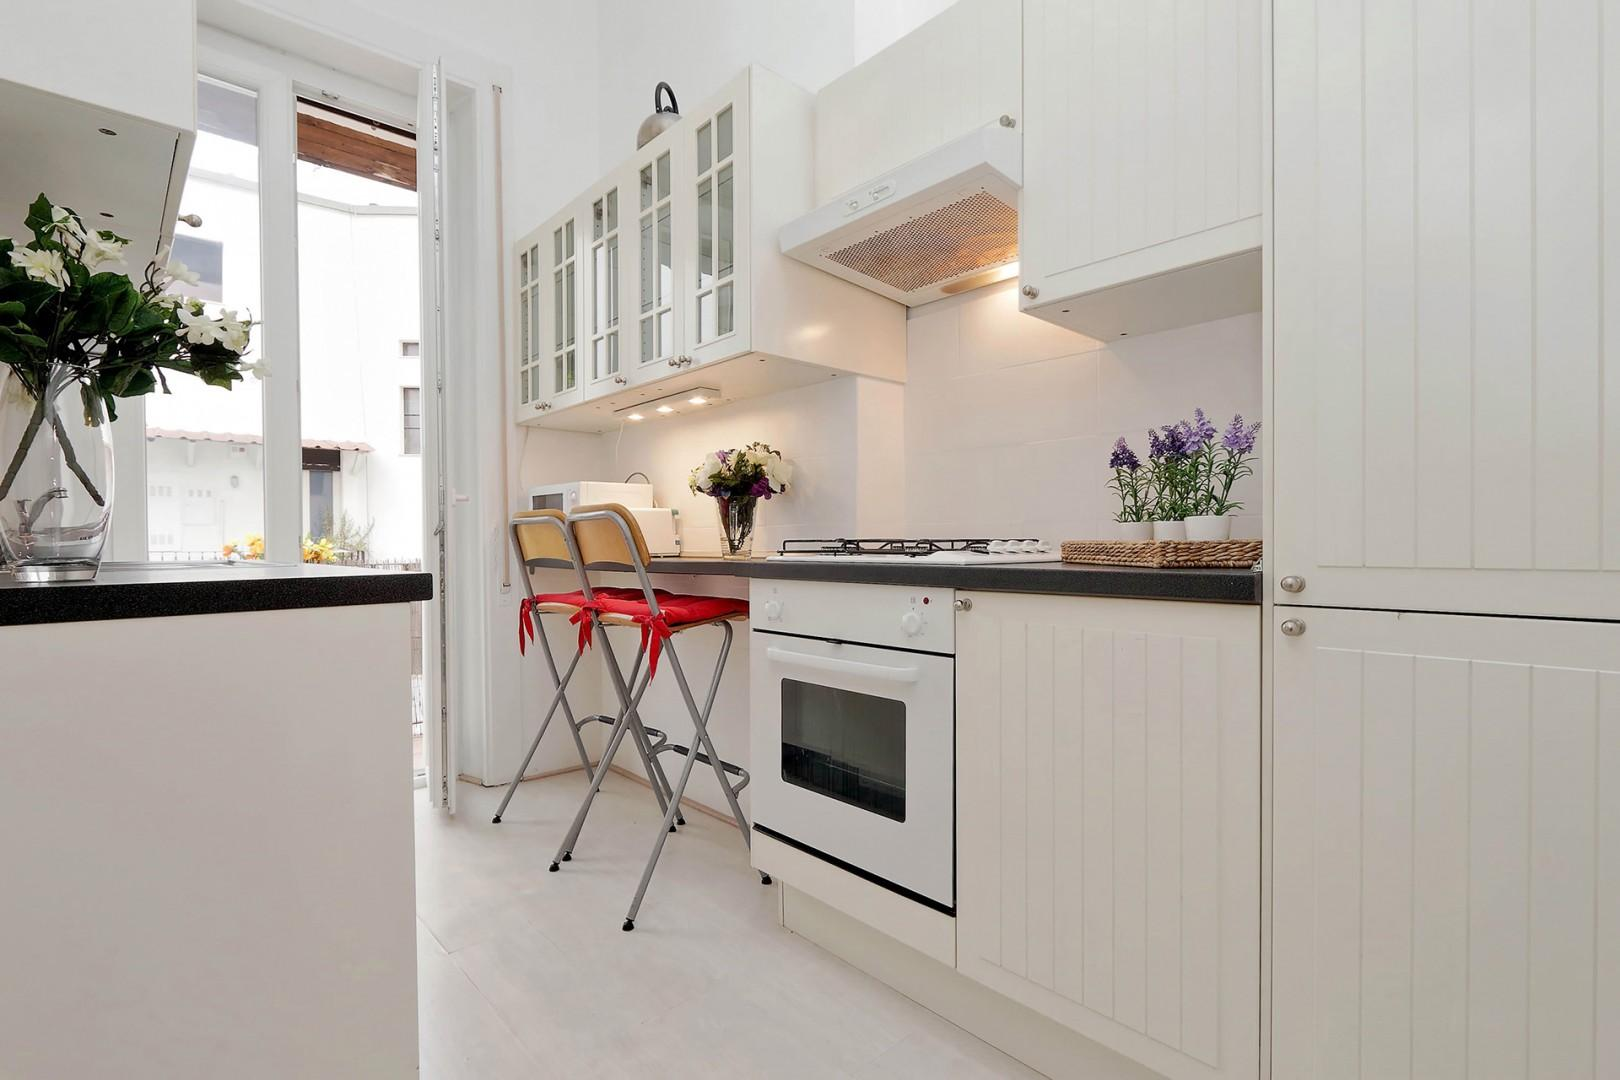 Fully appointed kitchen with a small balcony, good place to put the drying rack for your clothes.